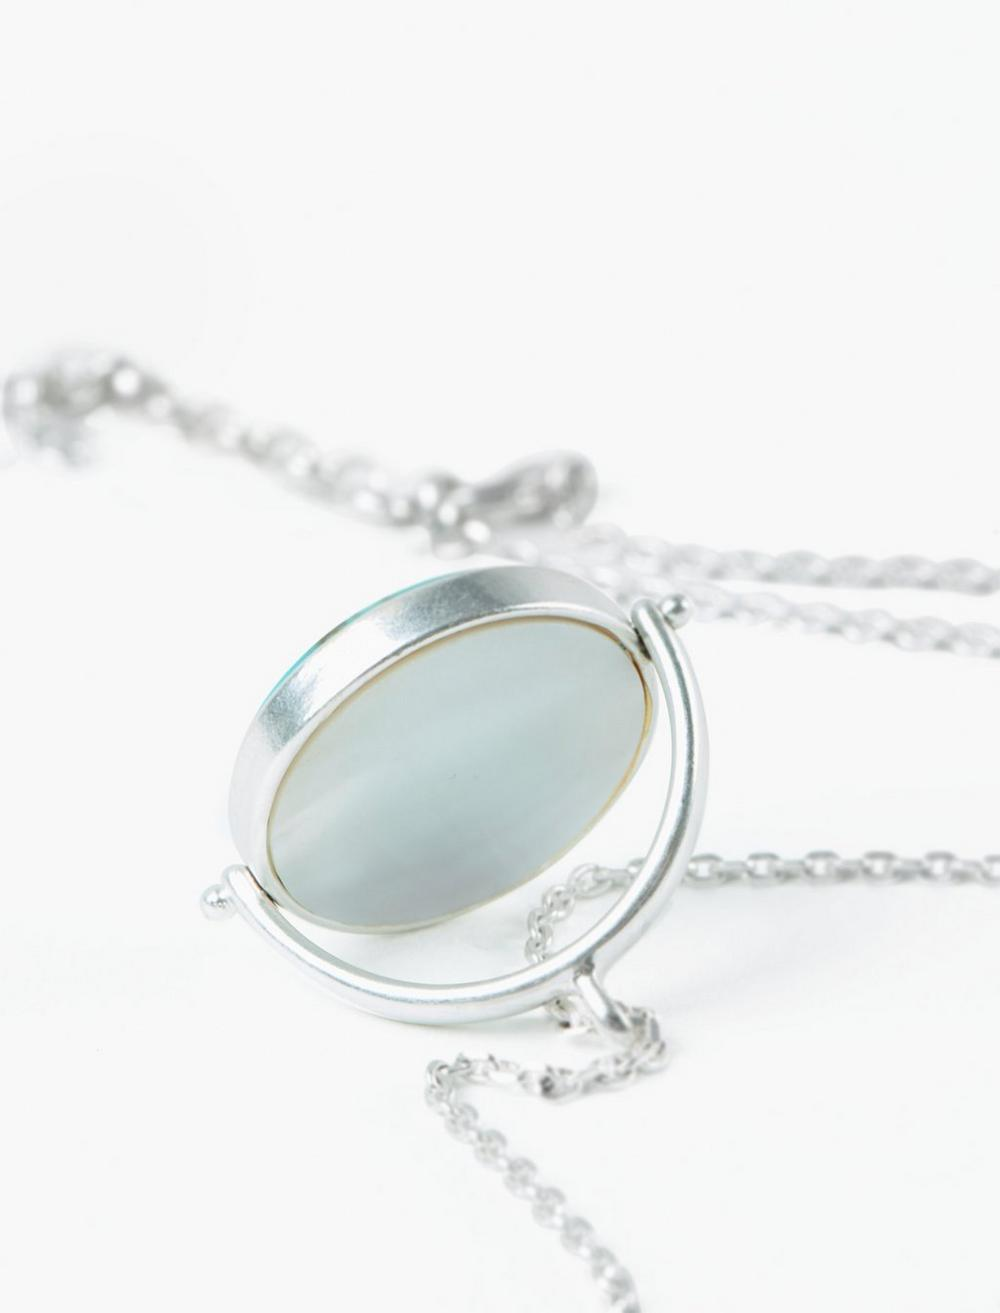 SPINNER PENDANT NECKLACE, image 6